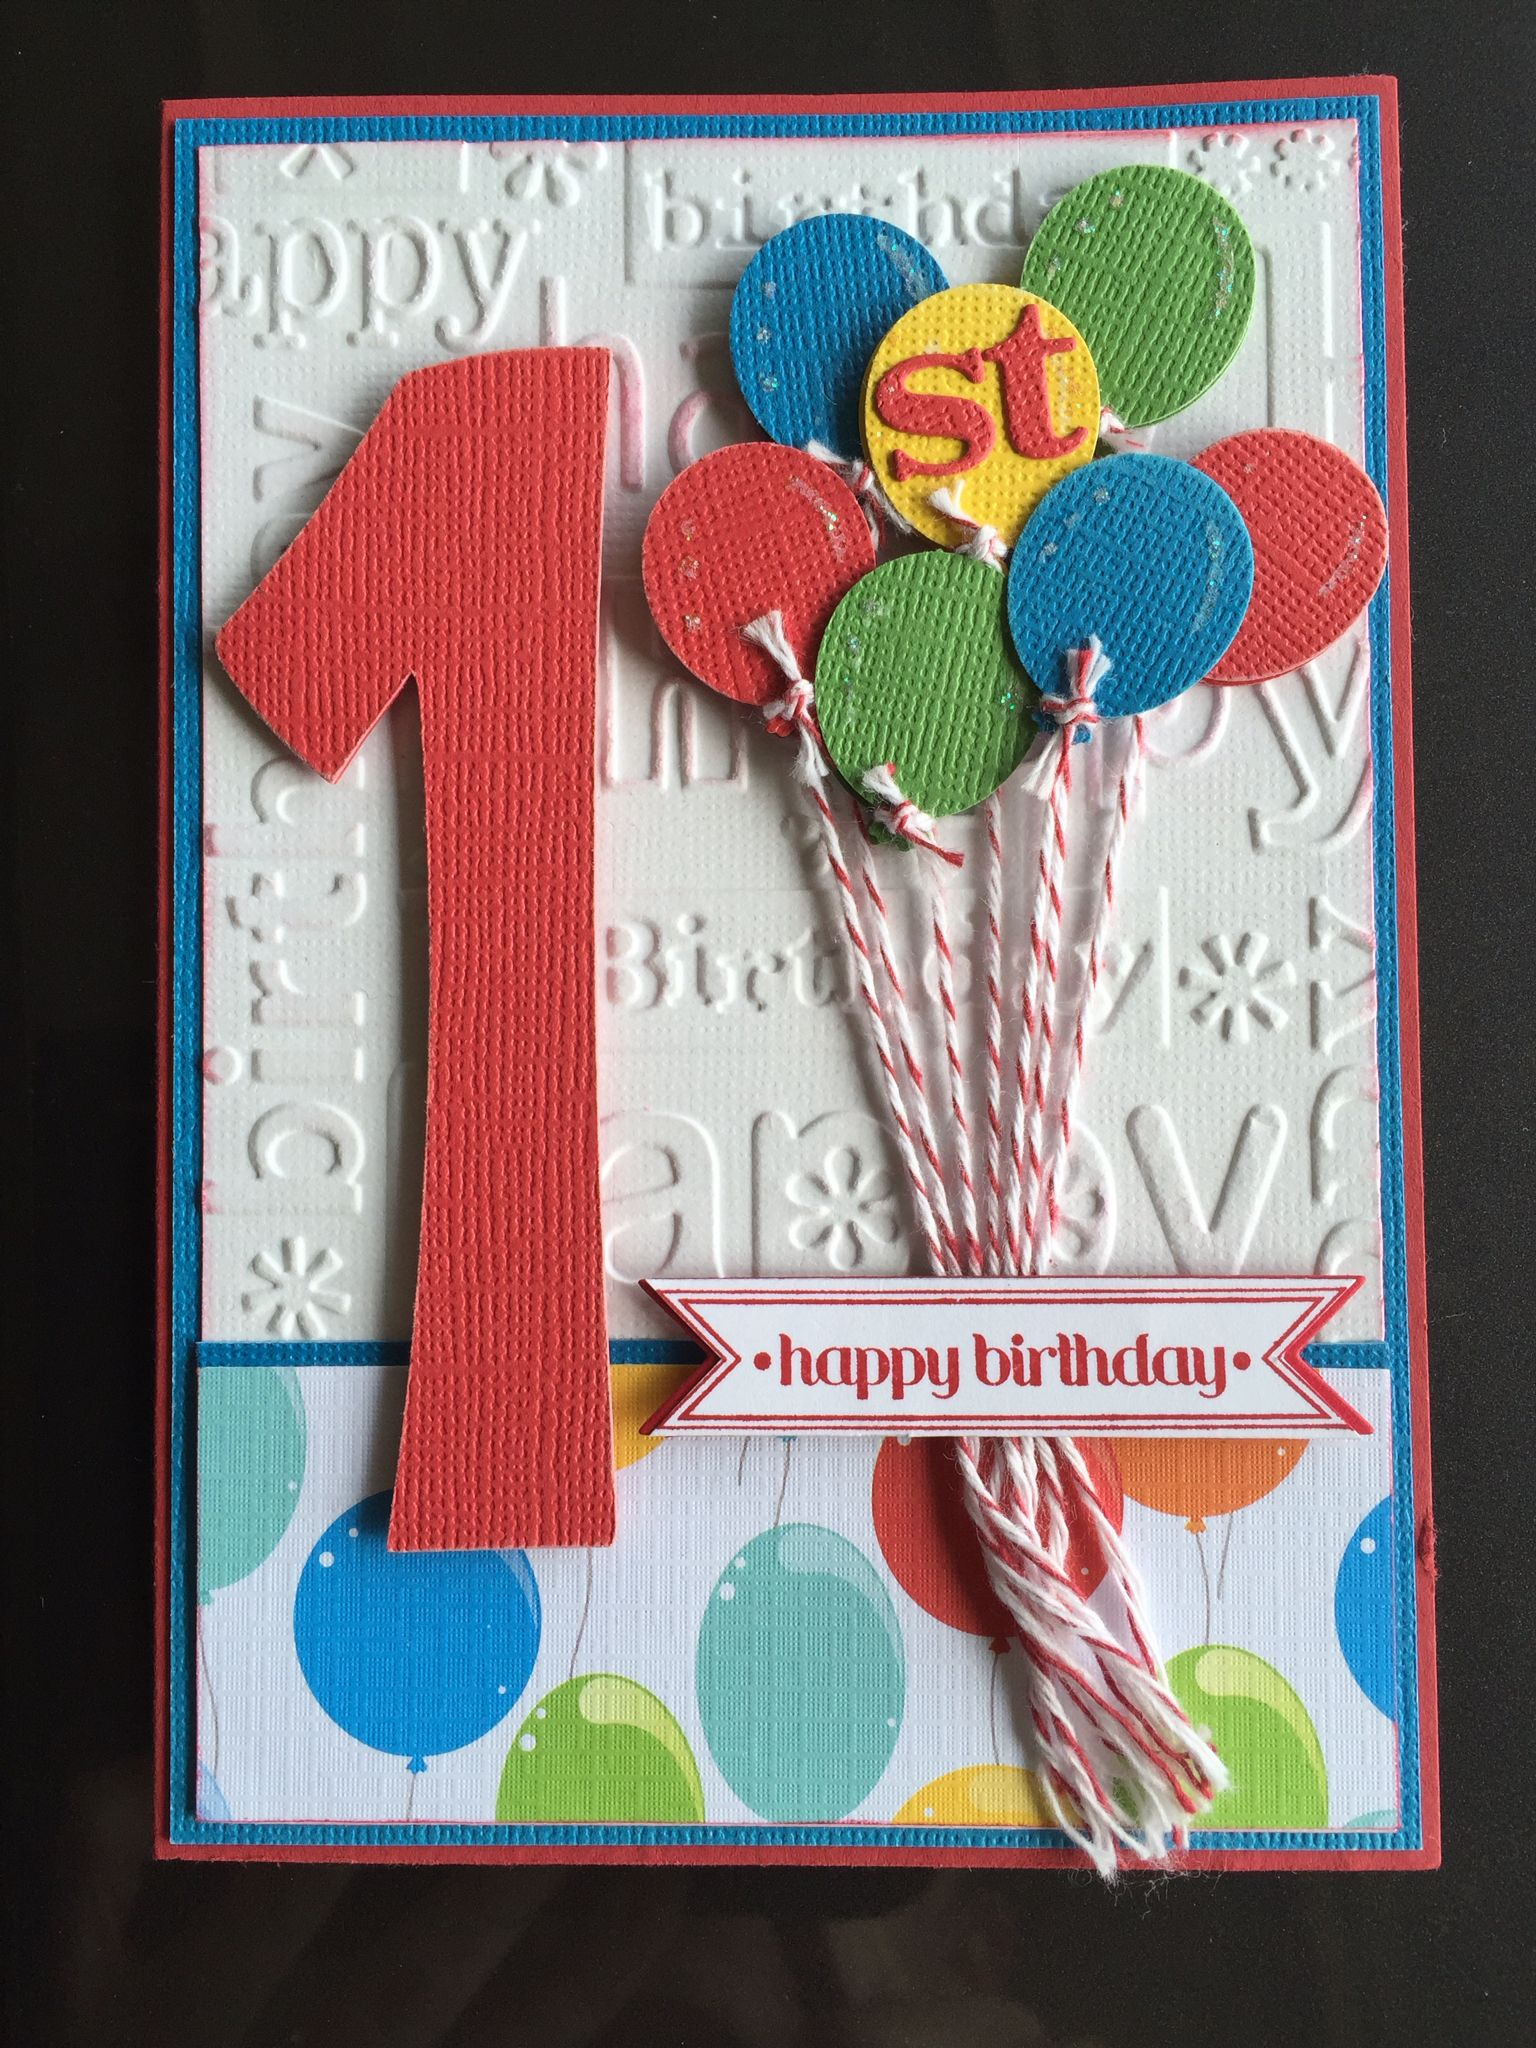 1st Birthday Card I Made For A Special Little Boy Named Owen More